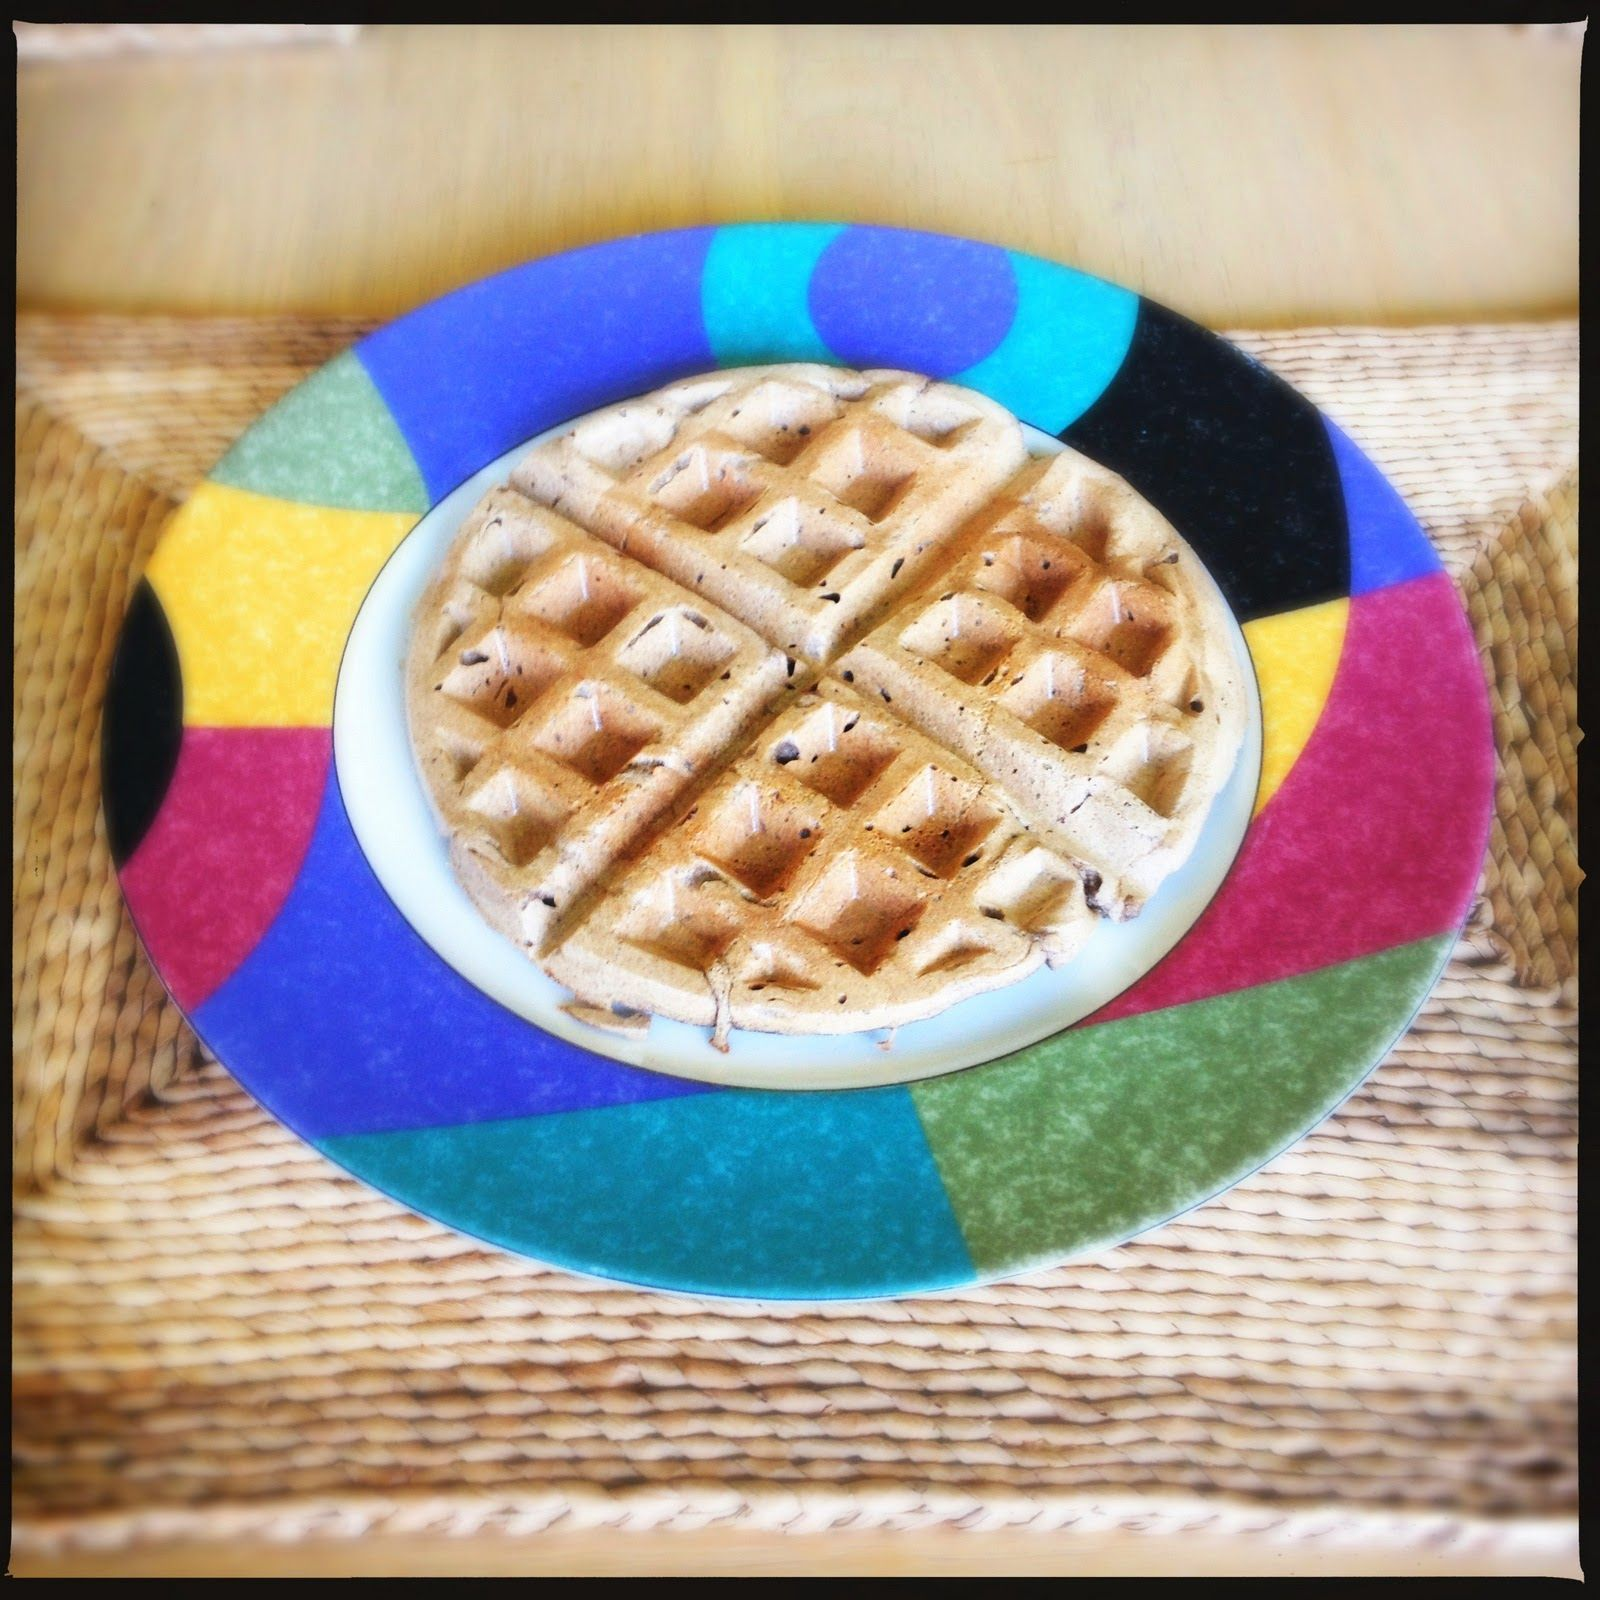 WHOLE FOODS PLANT BASED WFPB N(o)il WAFFLES....WHOLE